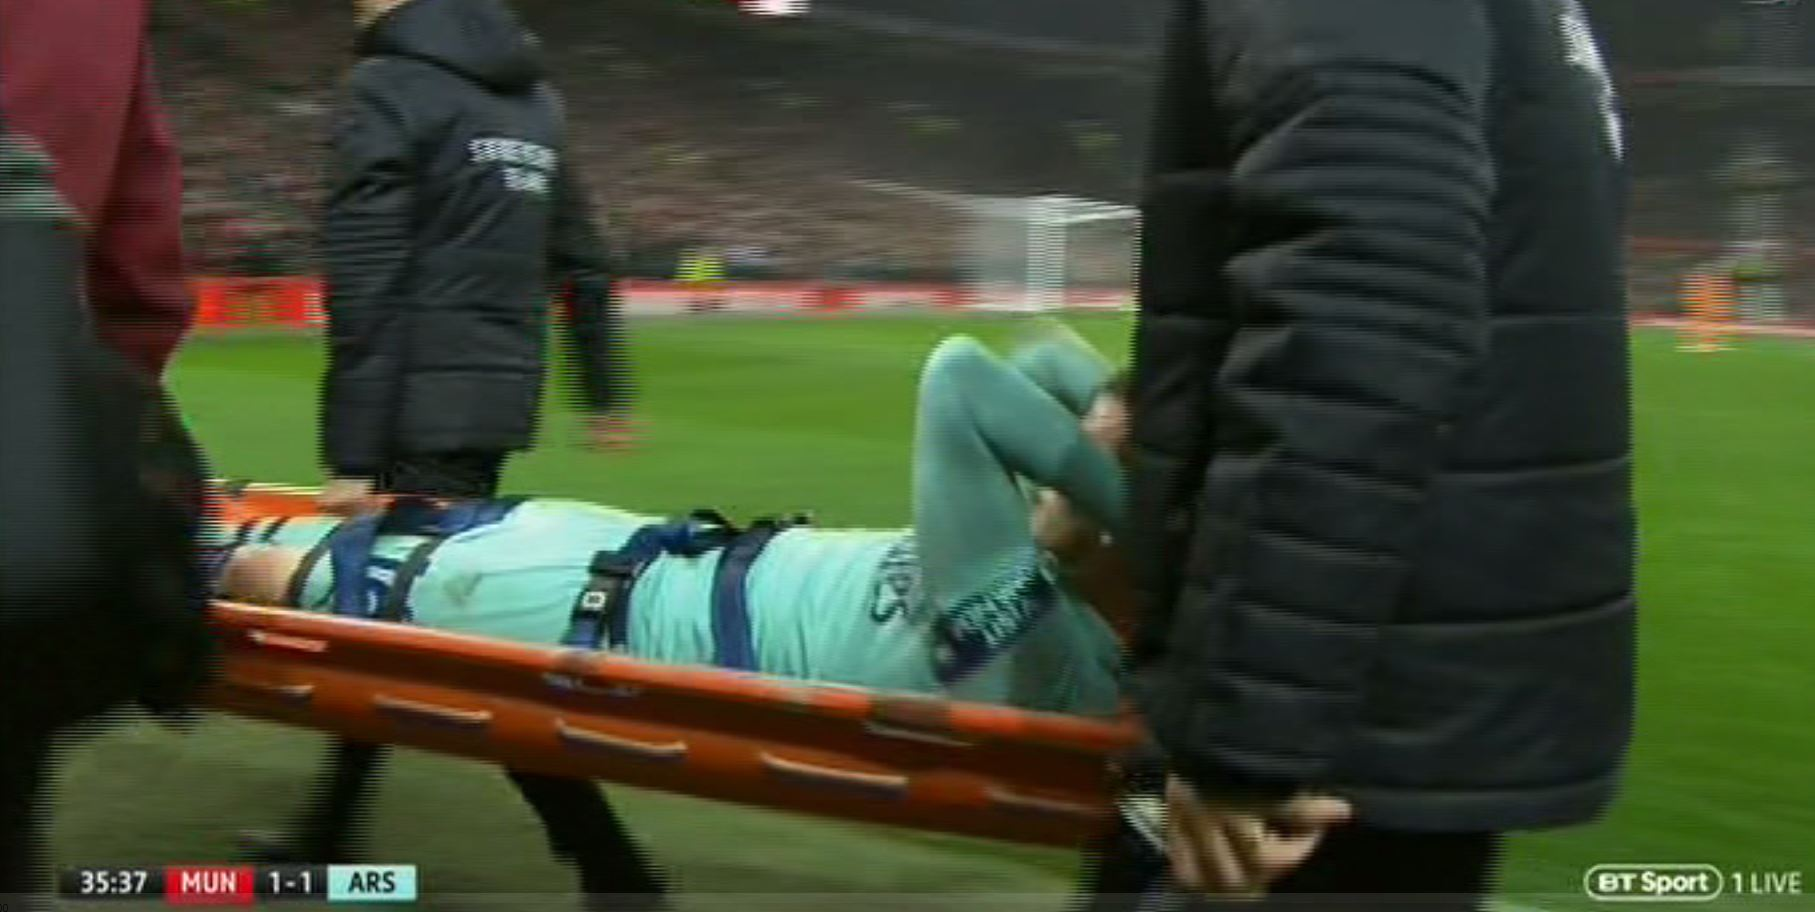 Rob Holding stretchered off in leg cast after challenge from Marcus Rashford